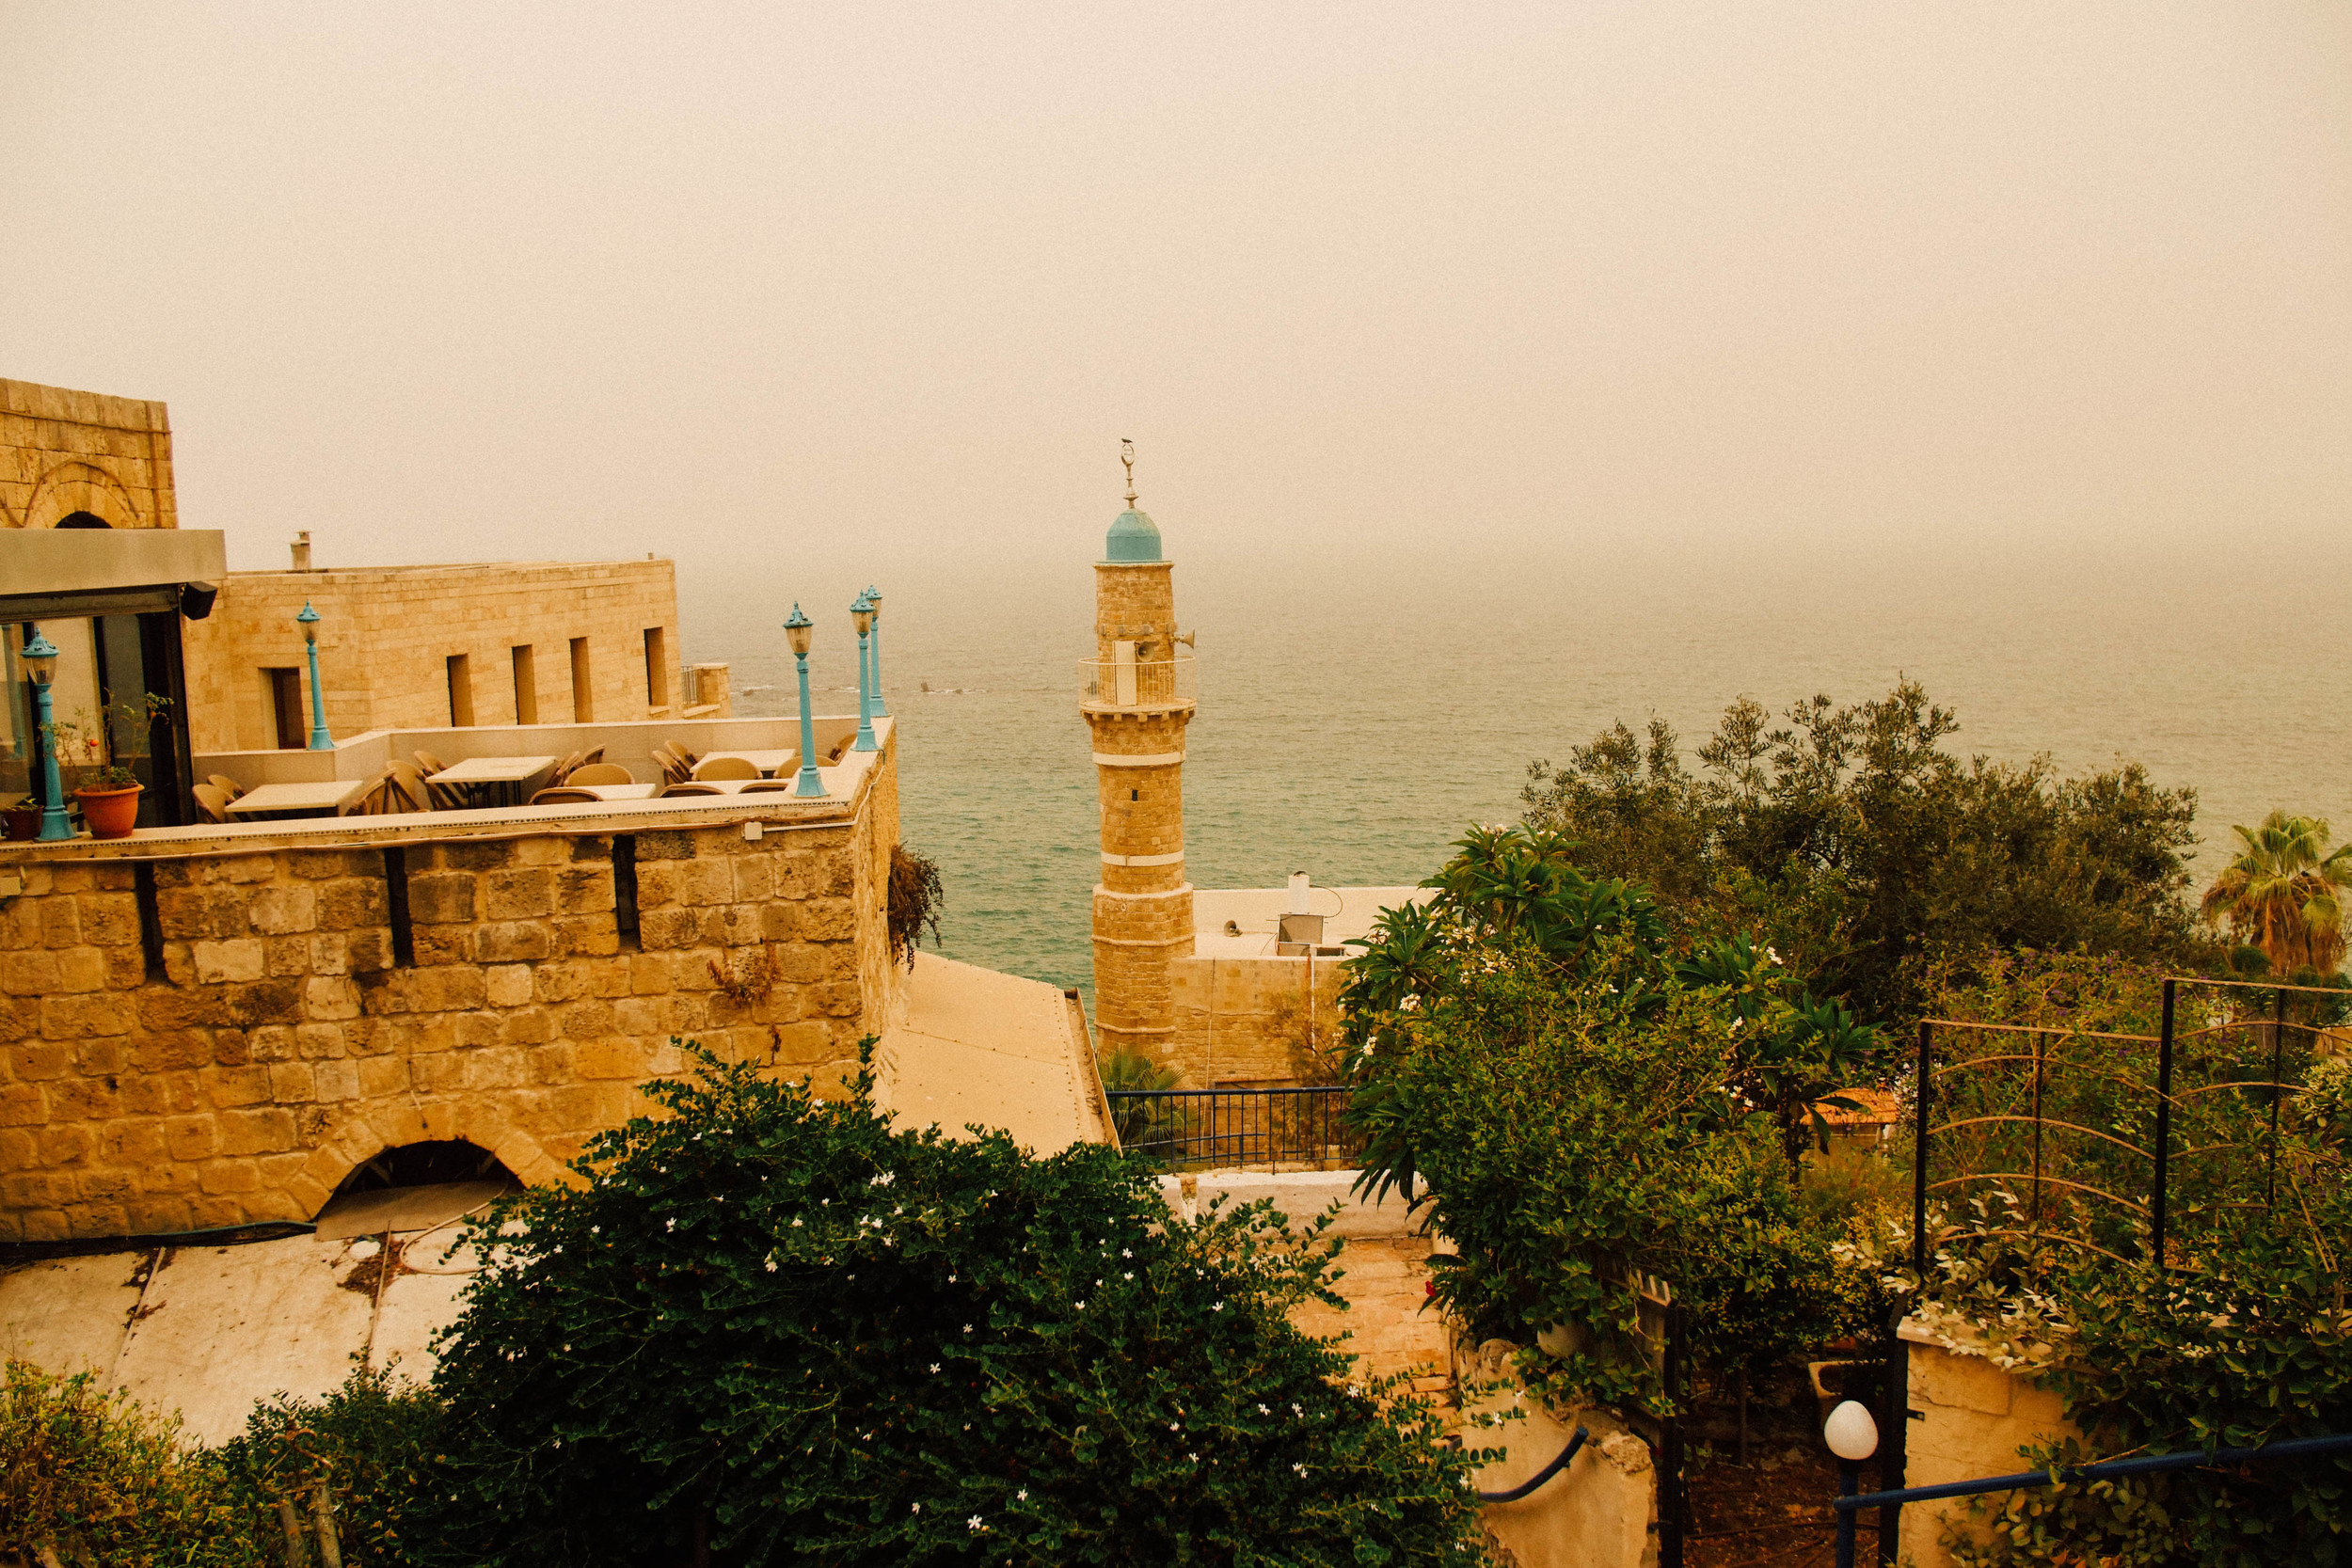 View of a Jaffa mosque